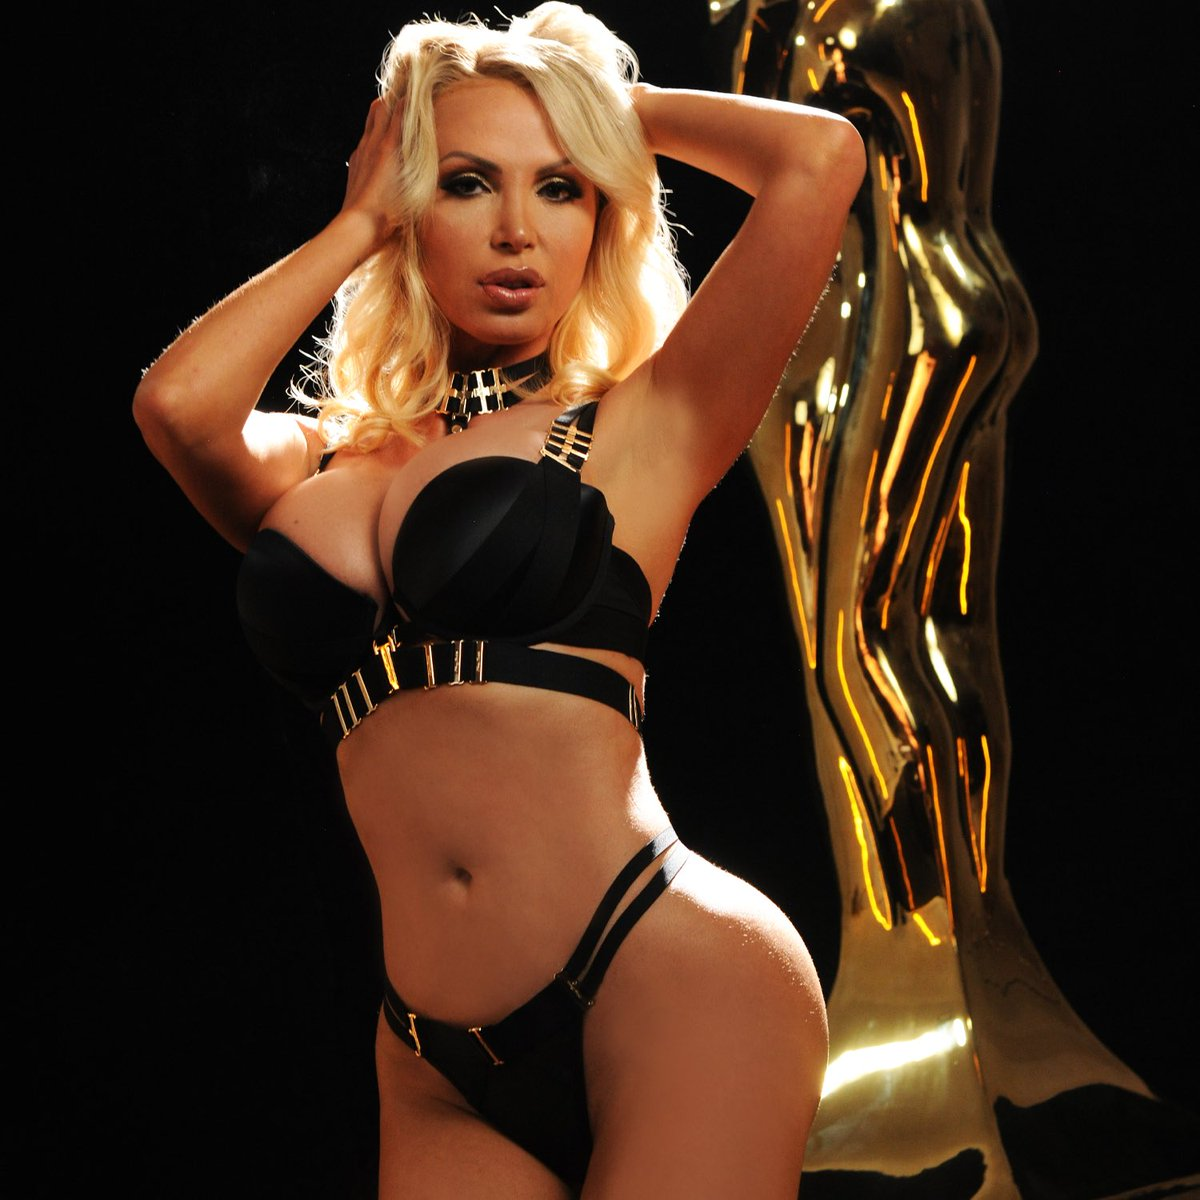 She has been coming to the AVN Awards since 2003. Now it is time for her to host! The one and only @nikkibenz. Be sure to get your tickets soon so you don't miss out!